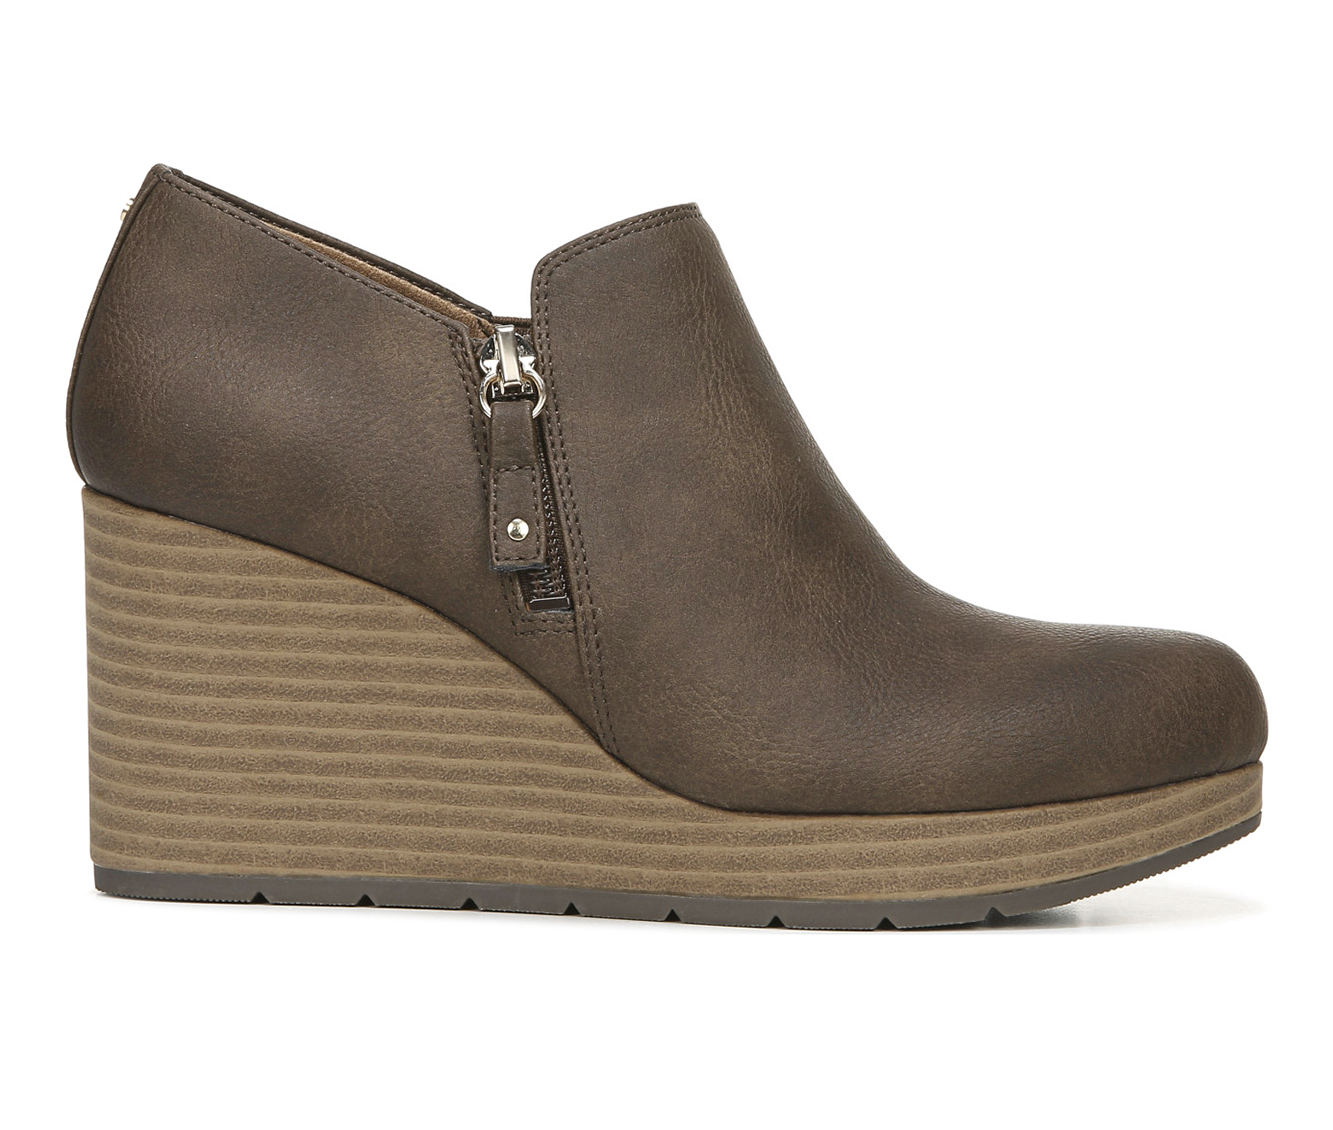 Dr. Scholls Whats Up Women's Shoe (Brown - Faux Leather)